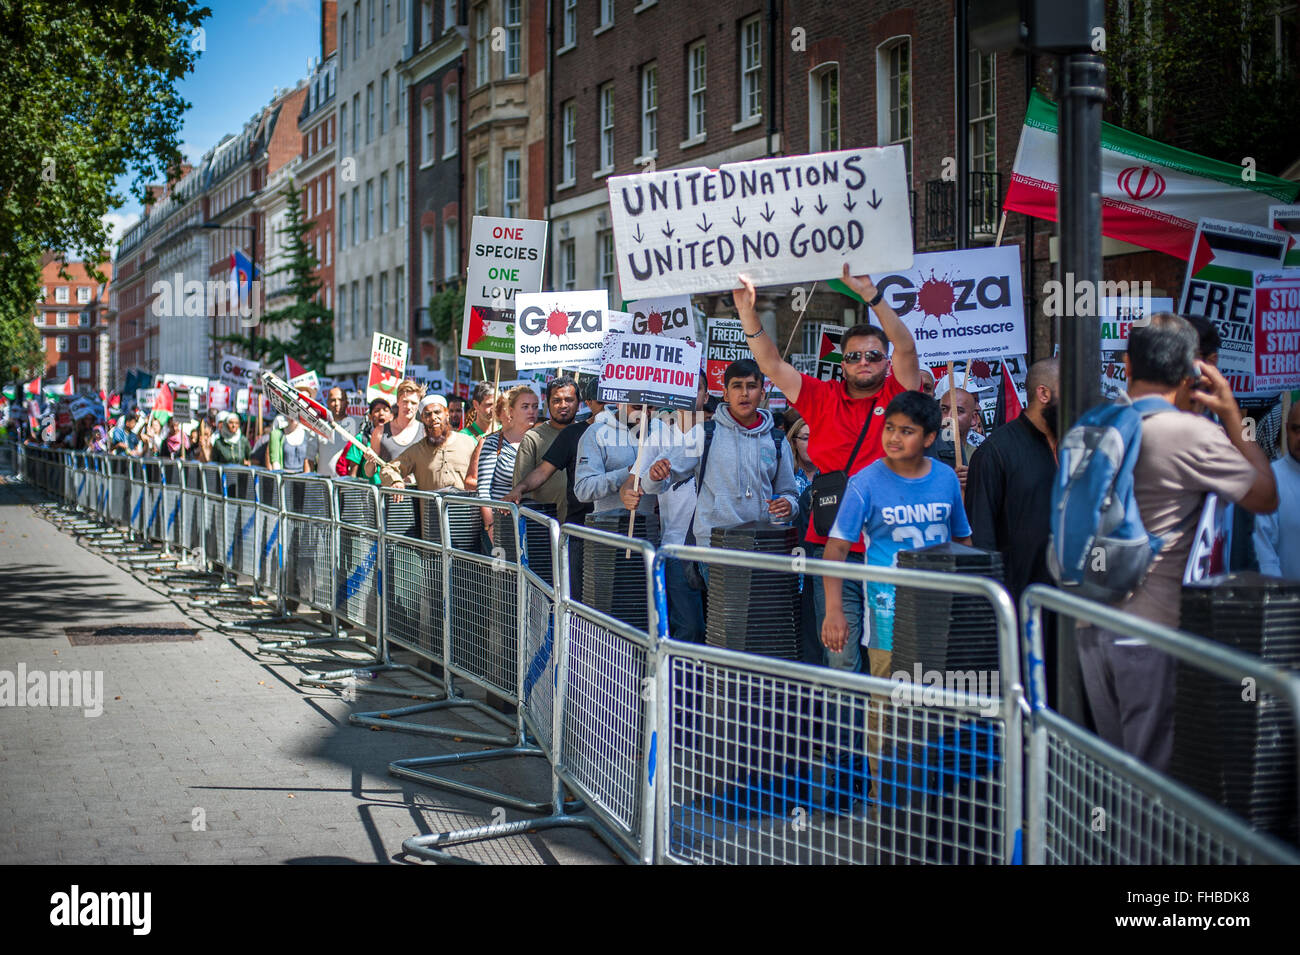 Protest march, rally for Gaza, London, Aug 9, 2014 - Stock Image